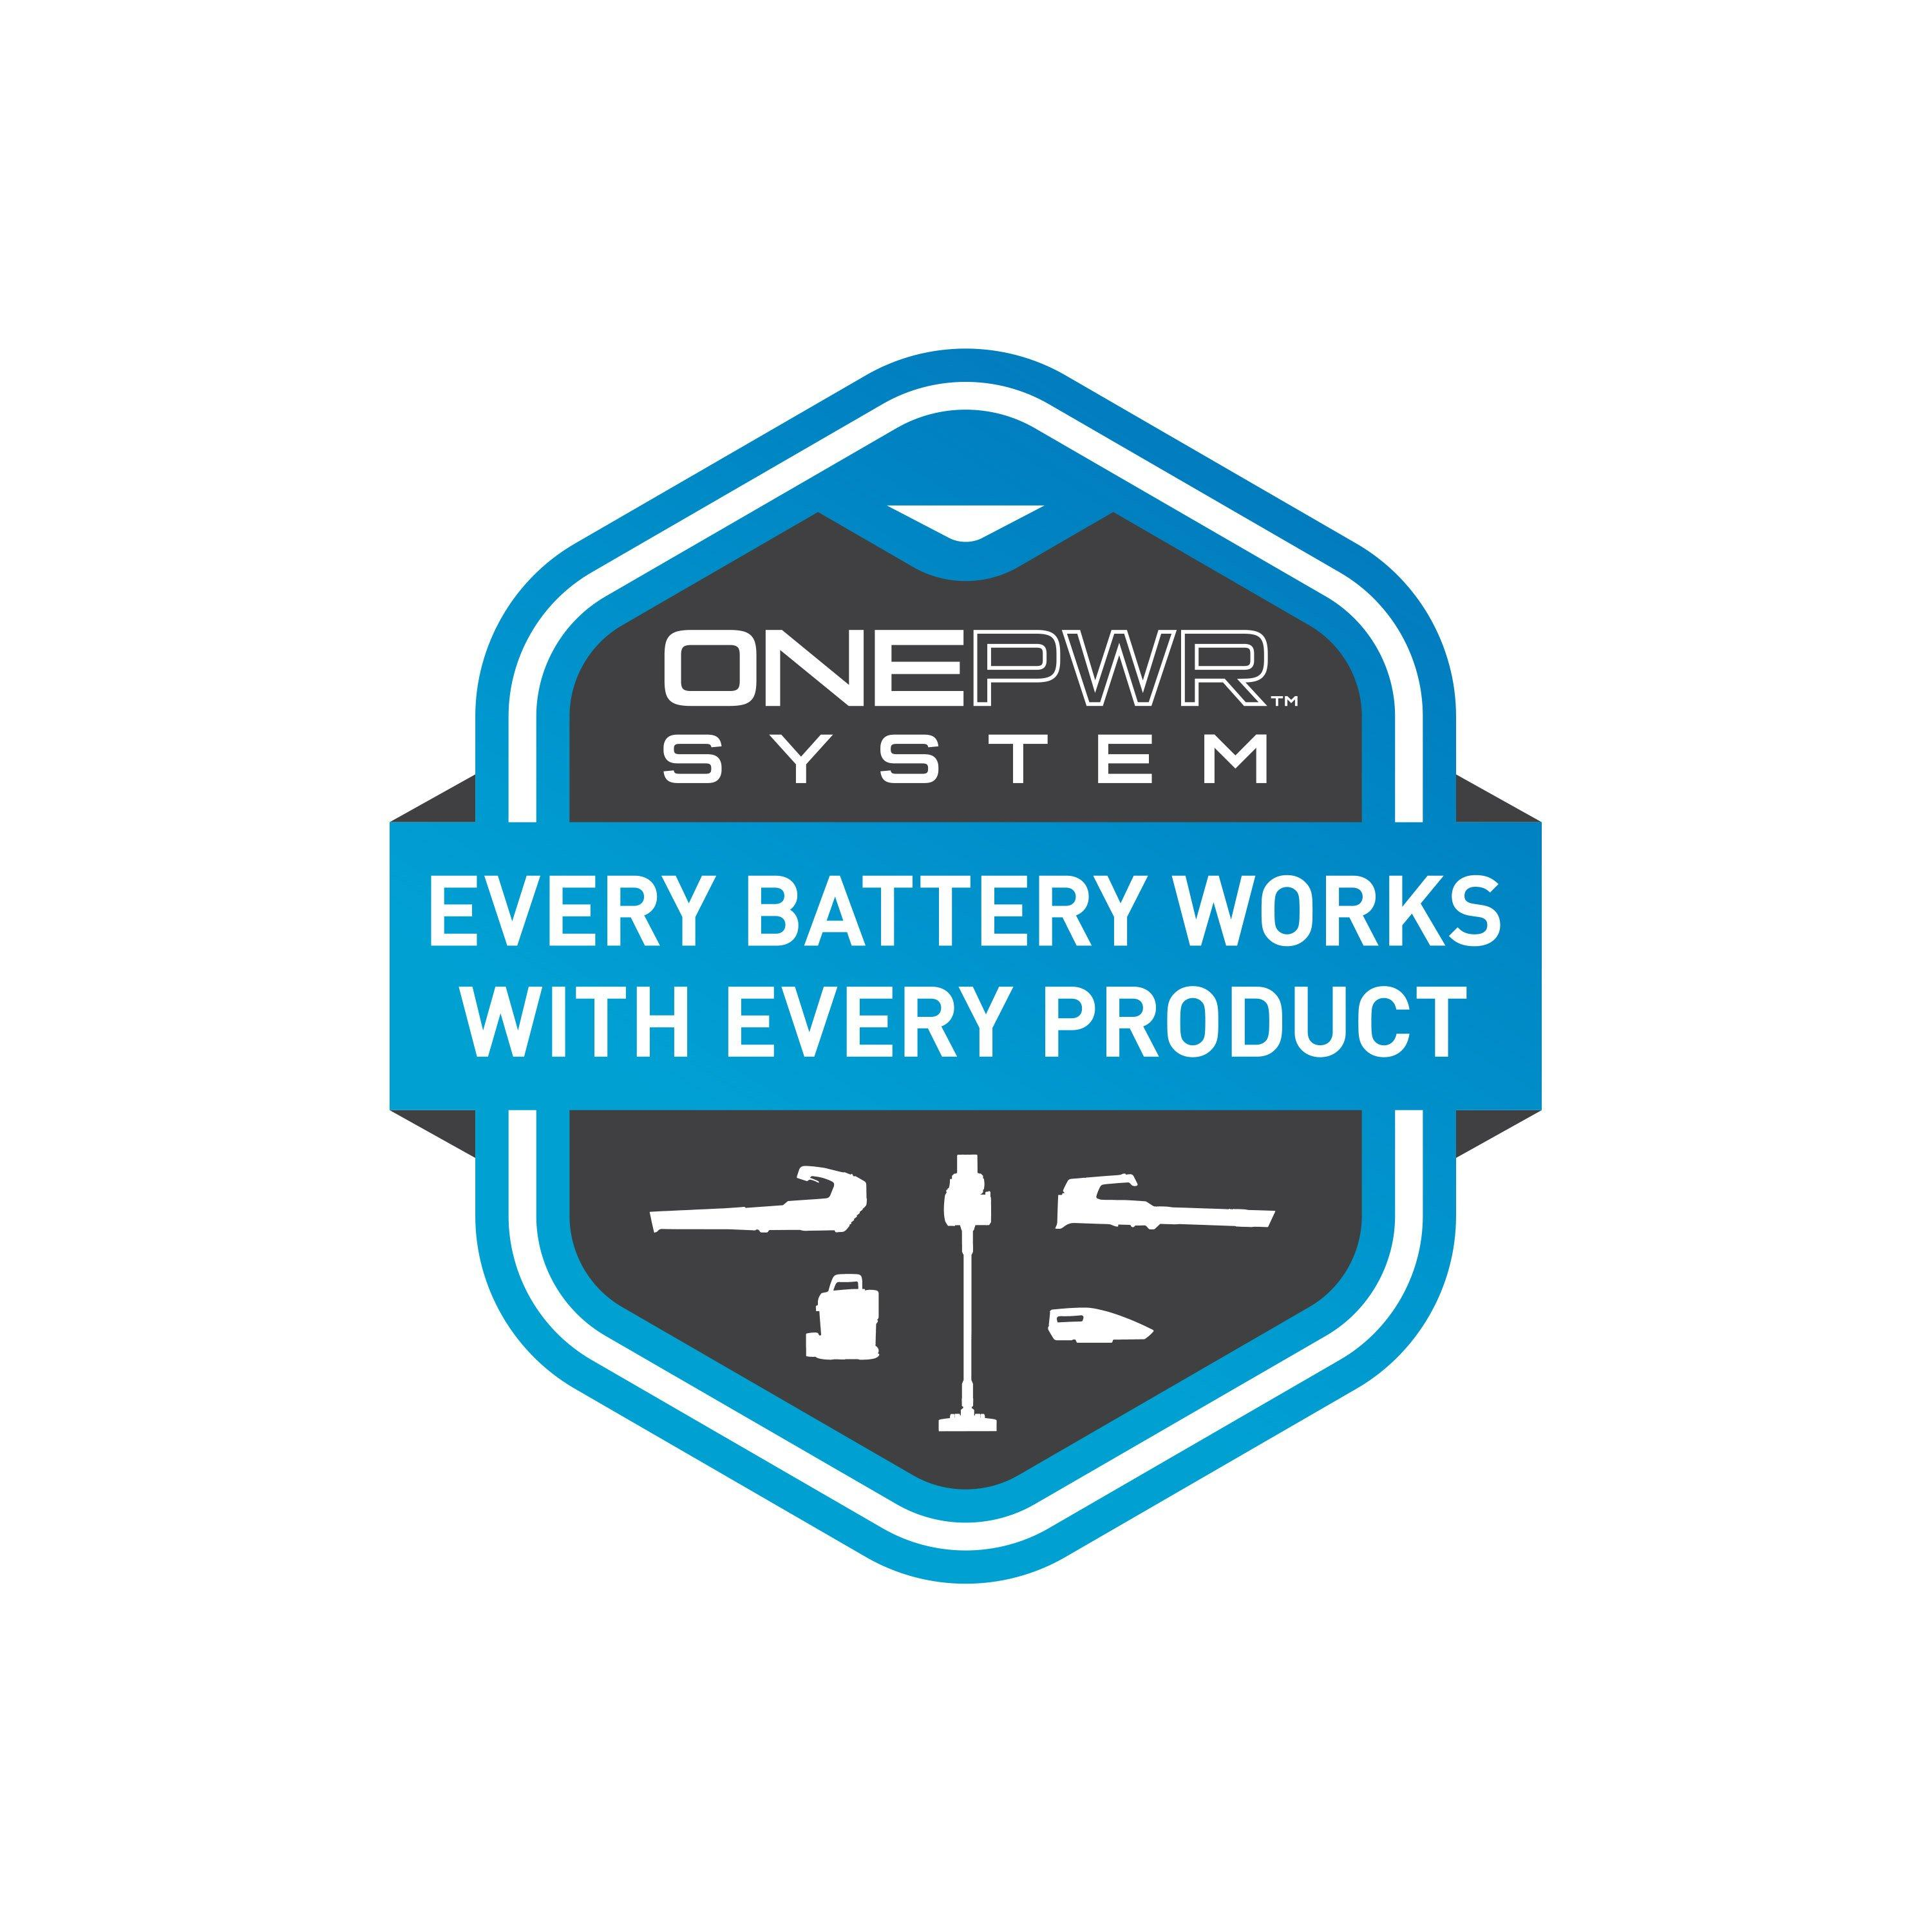 ONEPWR 4.0 Ah MAX Lithium-Ion Battery5